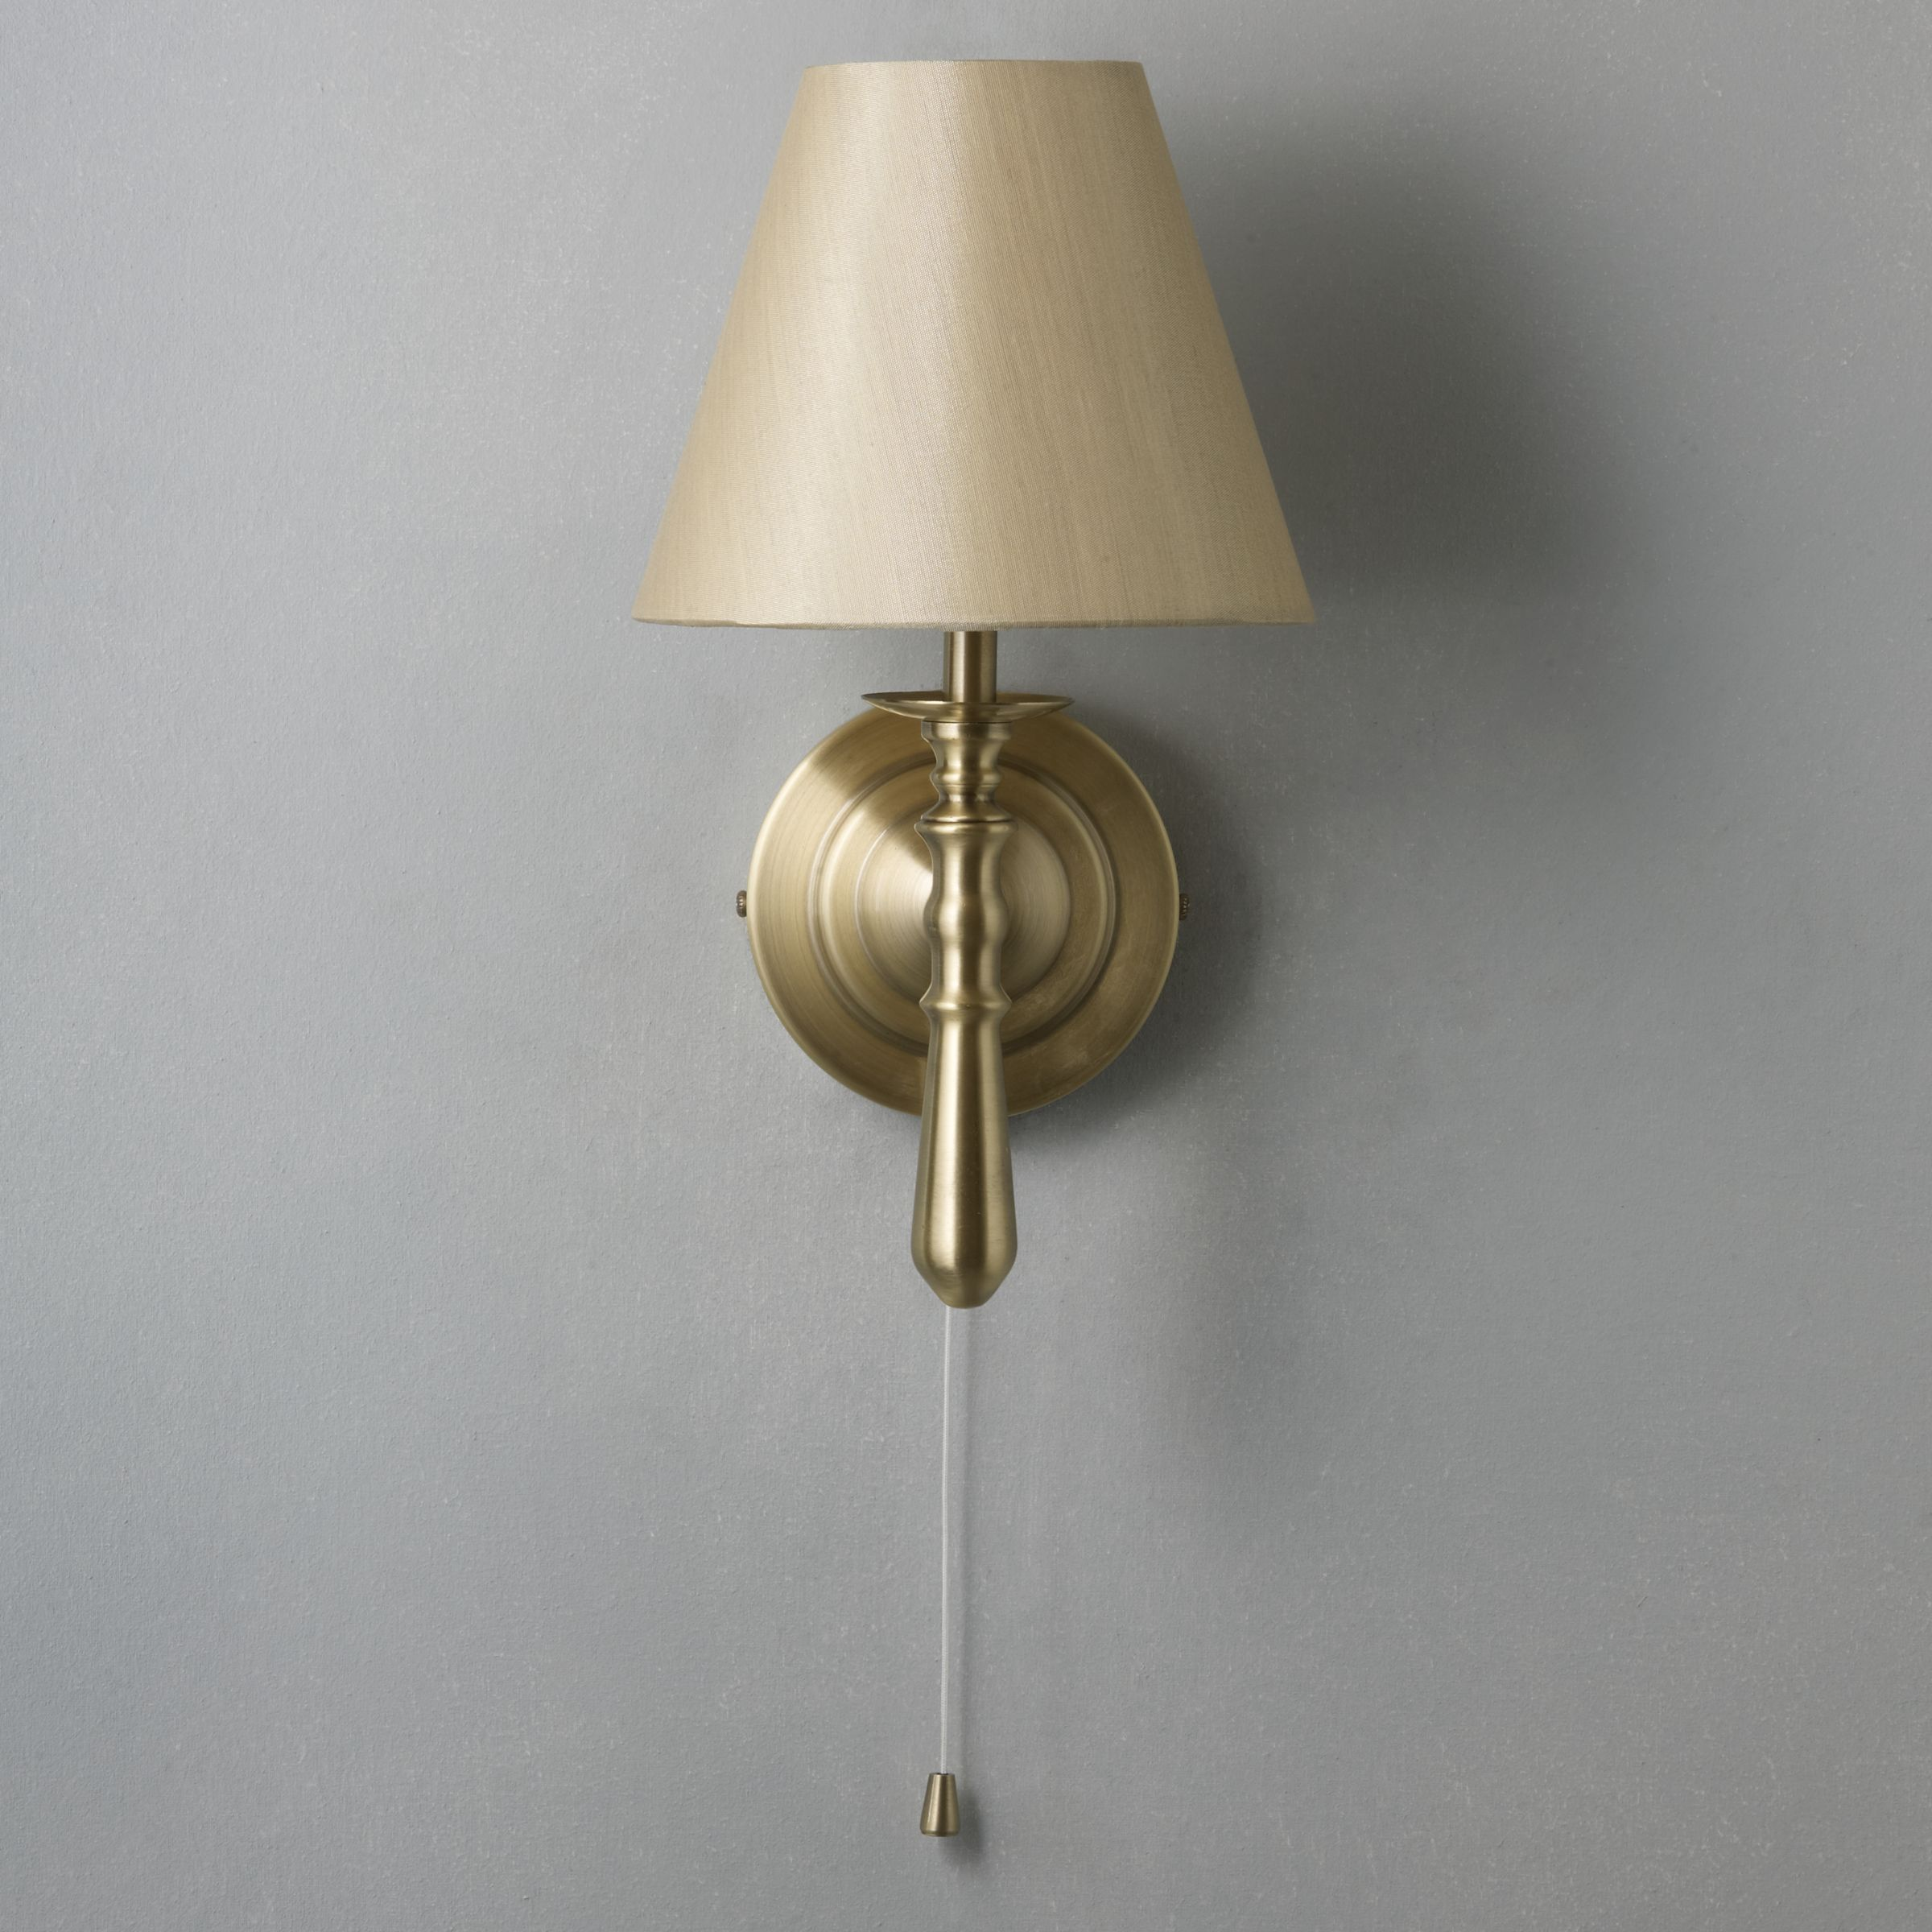 Amalfi Wall Light John Lewis : Mesmerizing Wall Light John Lewis Ideas - Best inspiration home design - eumolp.us